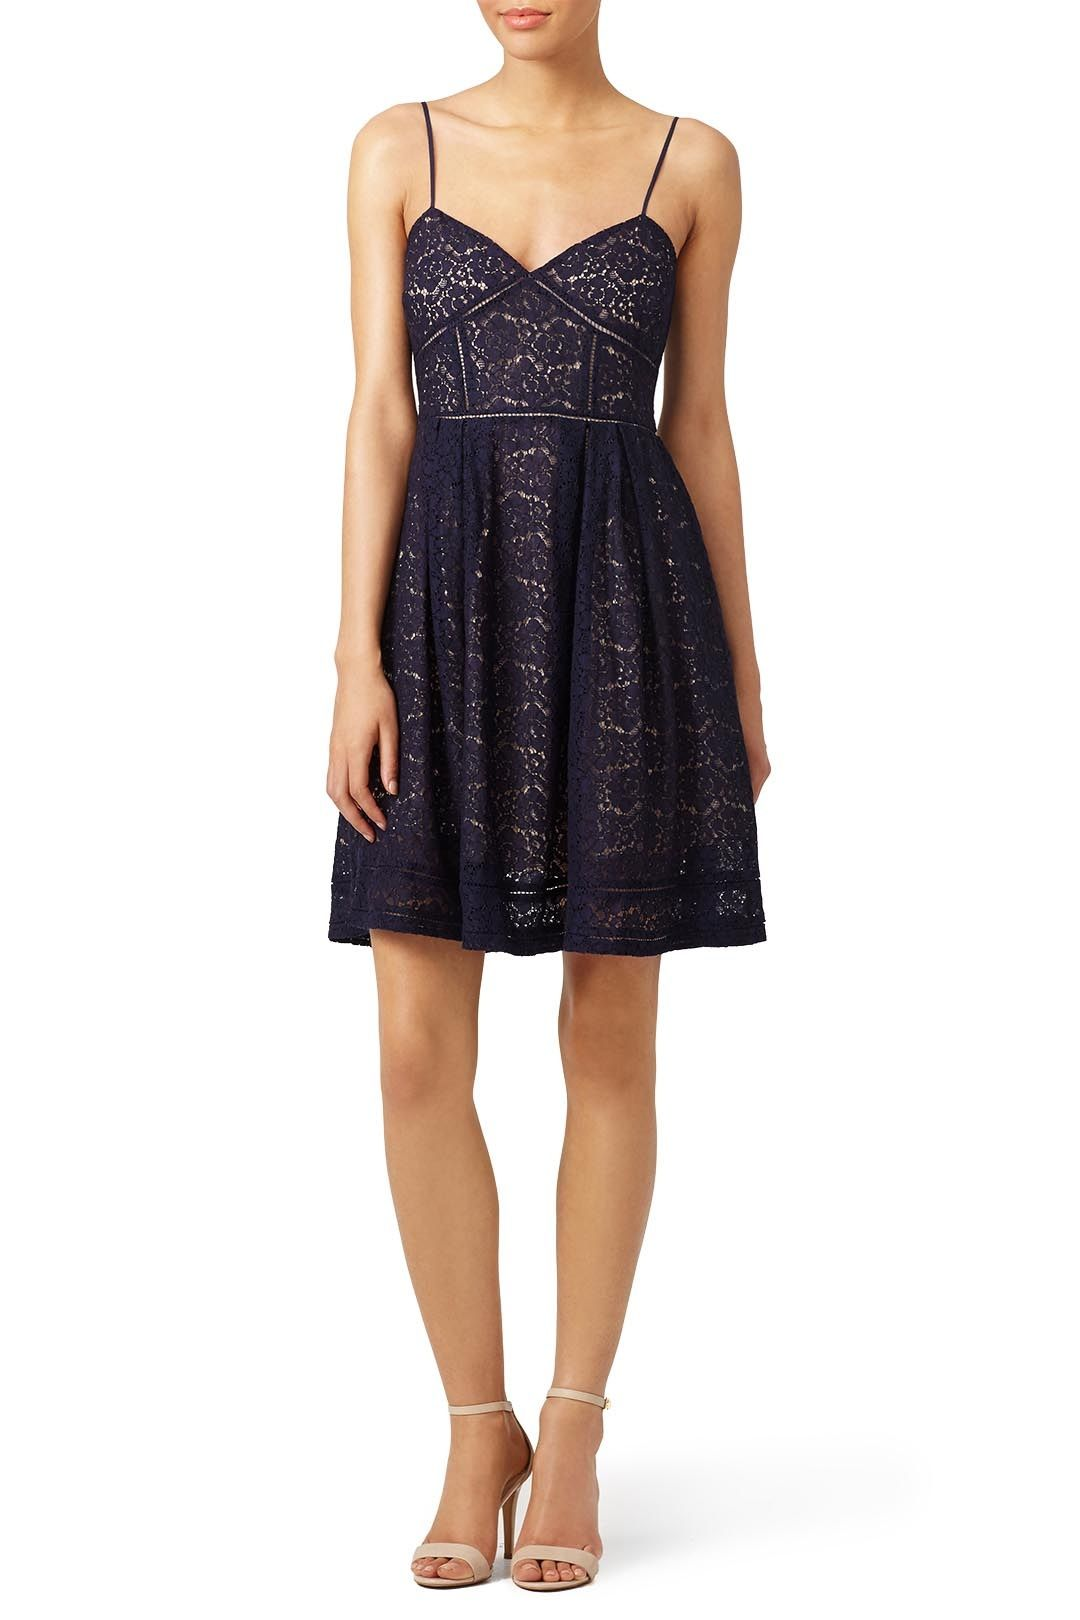 Lace dress for wedding  Joieus navy lace dress is perfect for and Engagement Party We love